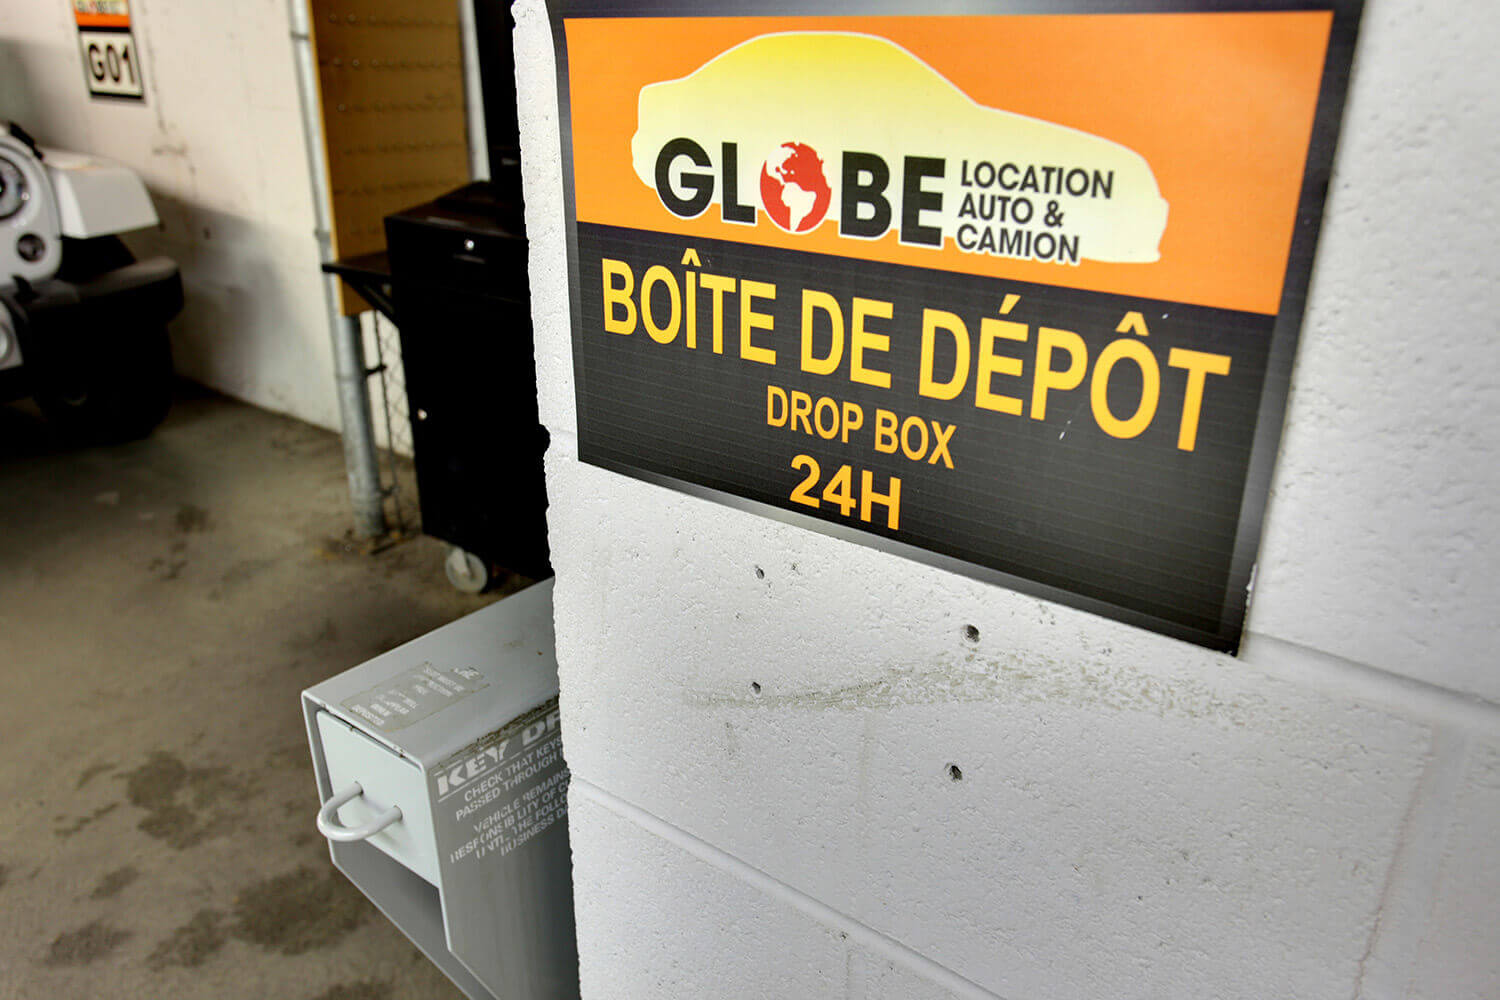 Downtown Montreal - Atwater (The Forum)   Globe Car & Truck